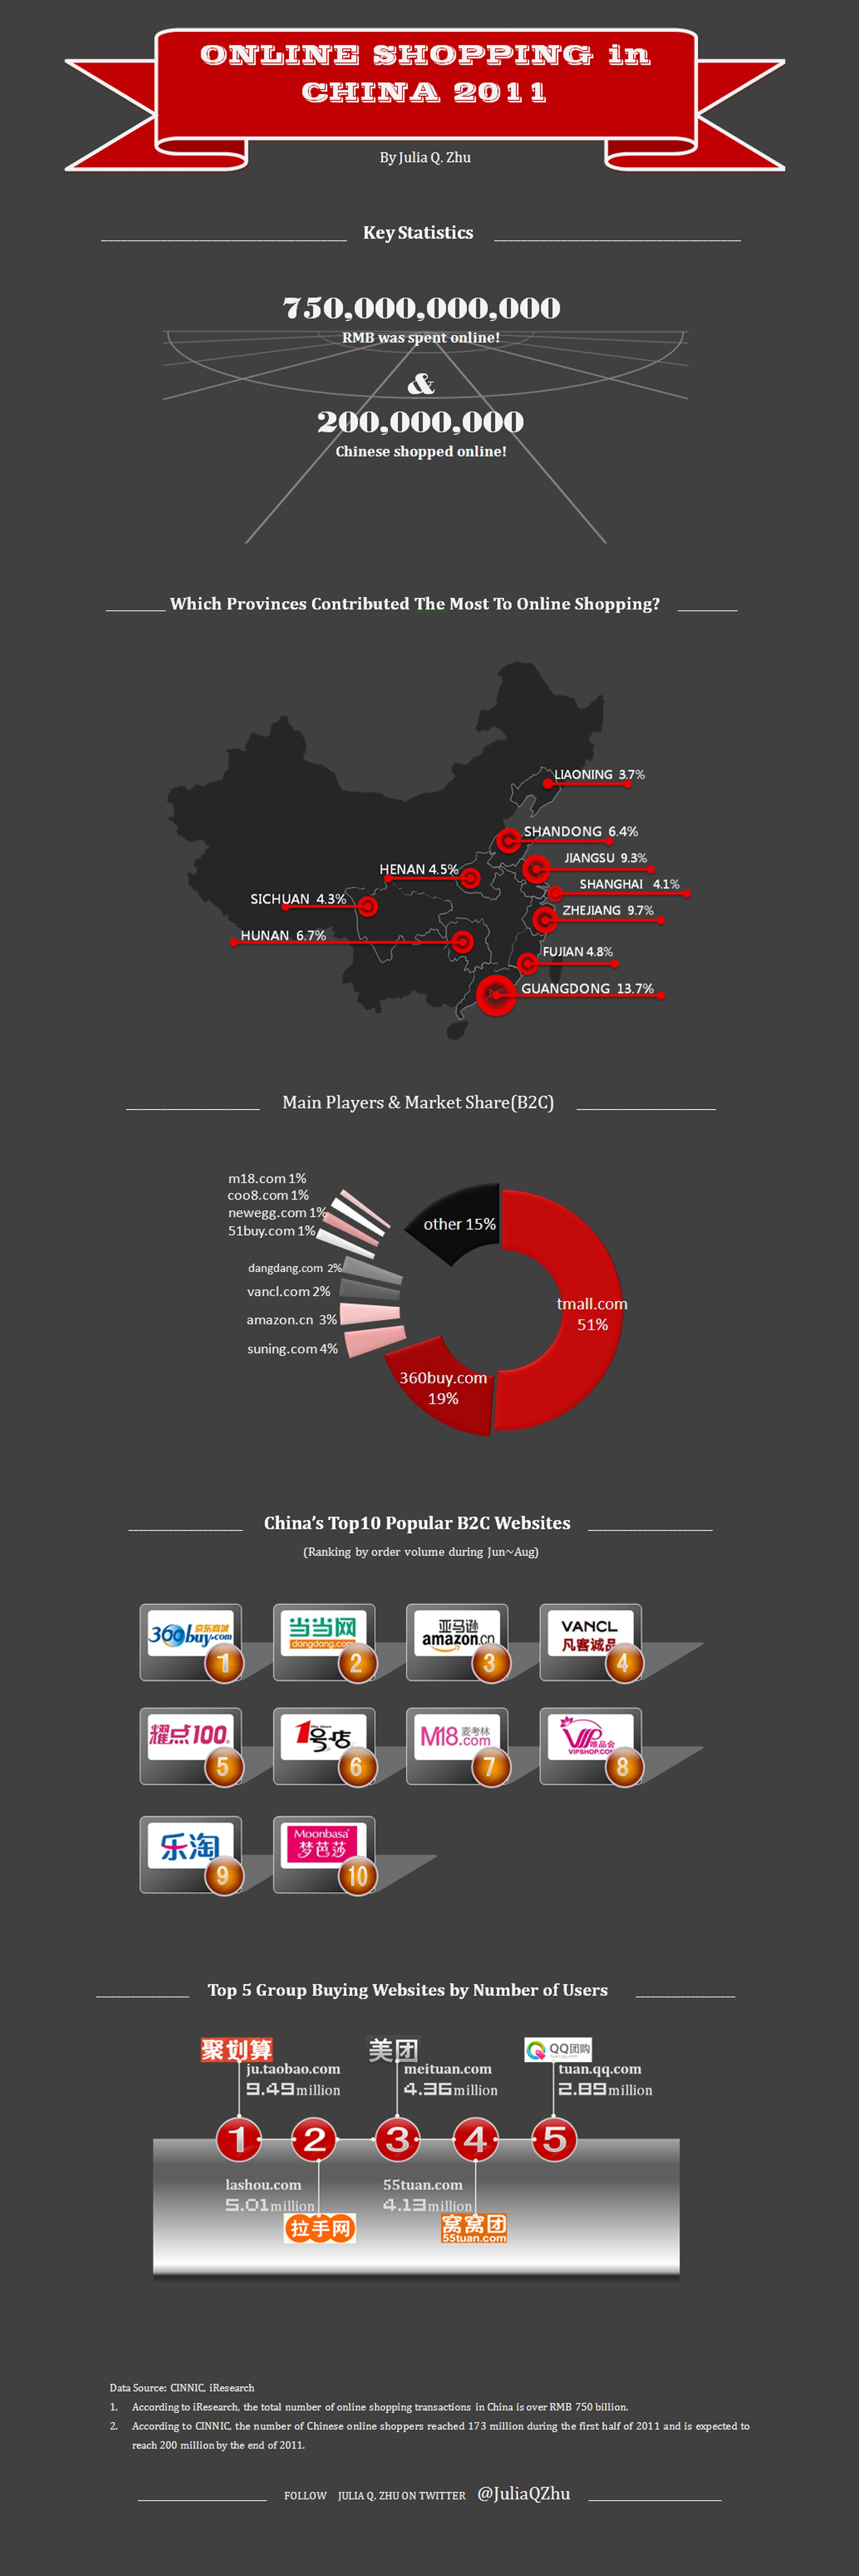 ecommerce en chine infographie - Le E-commerce en Chine